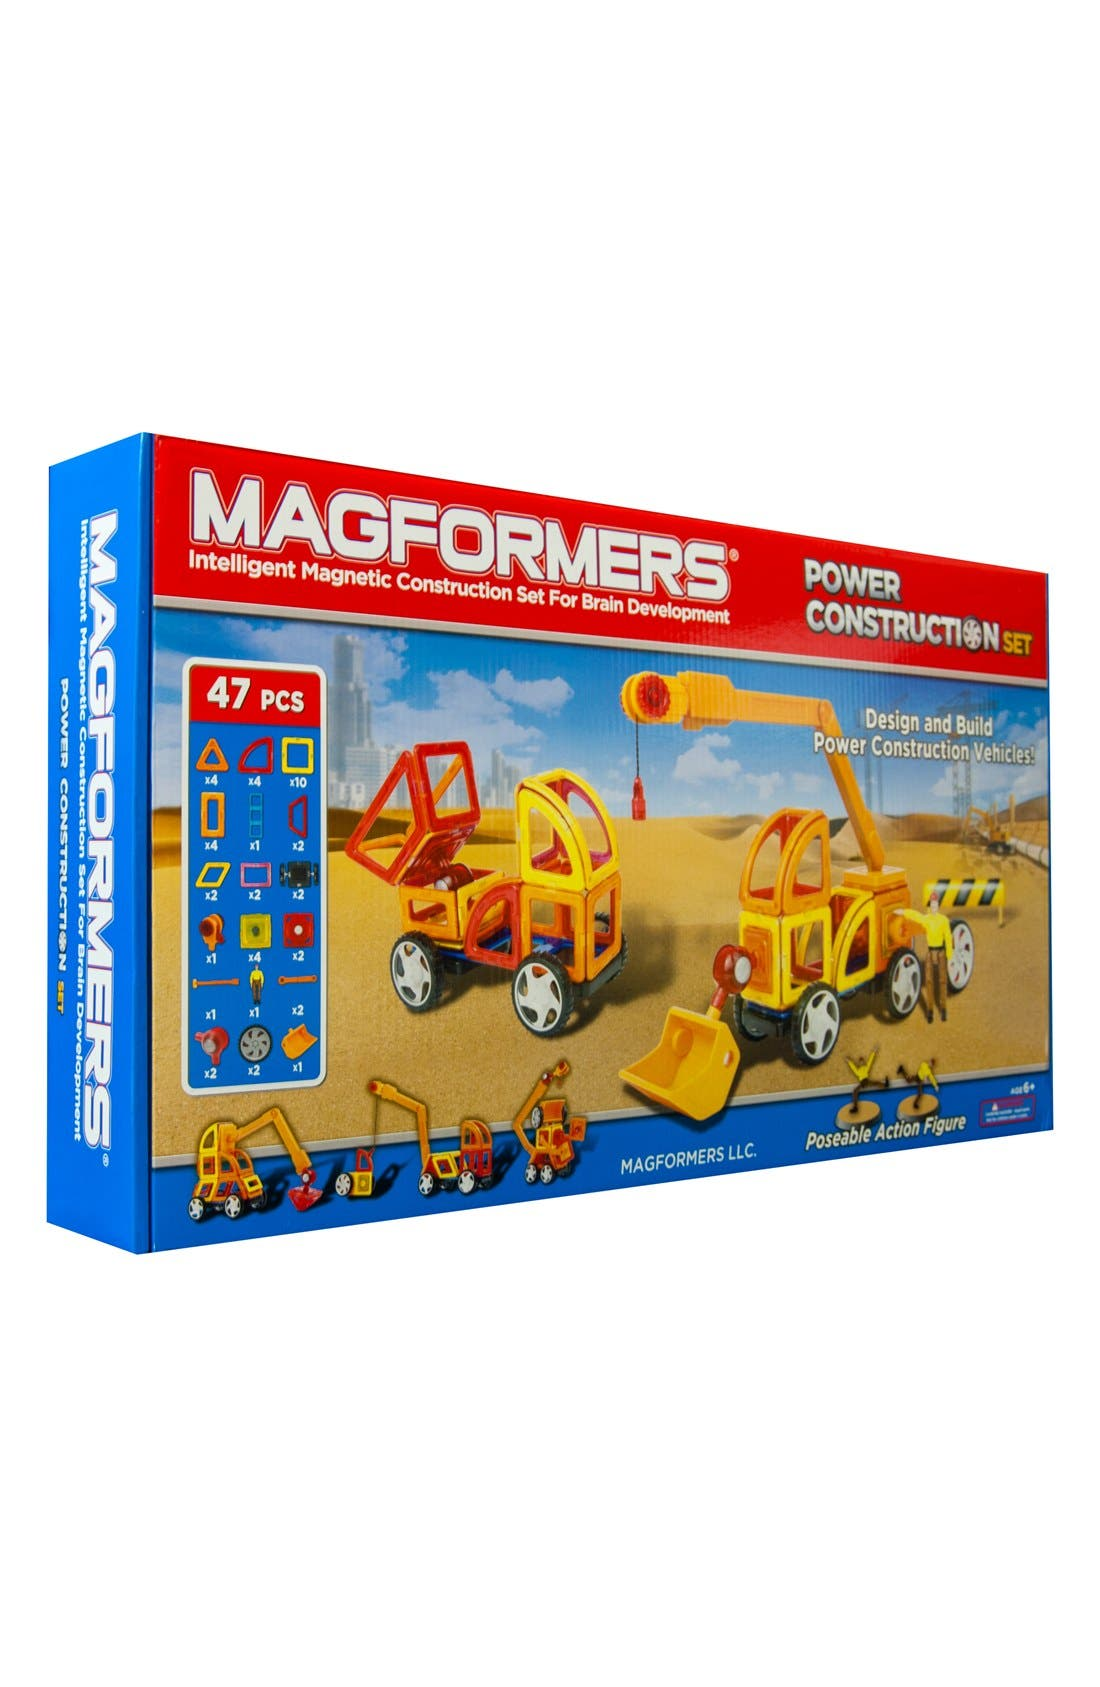 Magformers 'Power' Construction Set